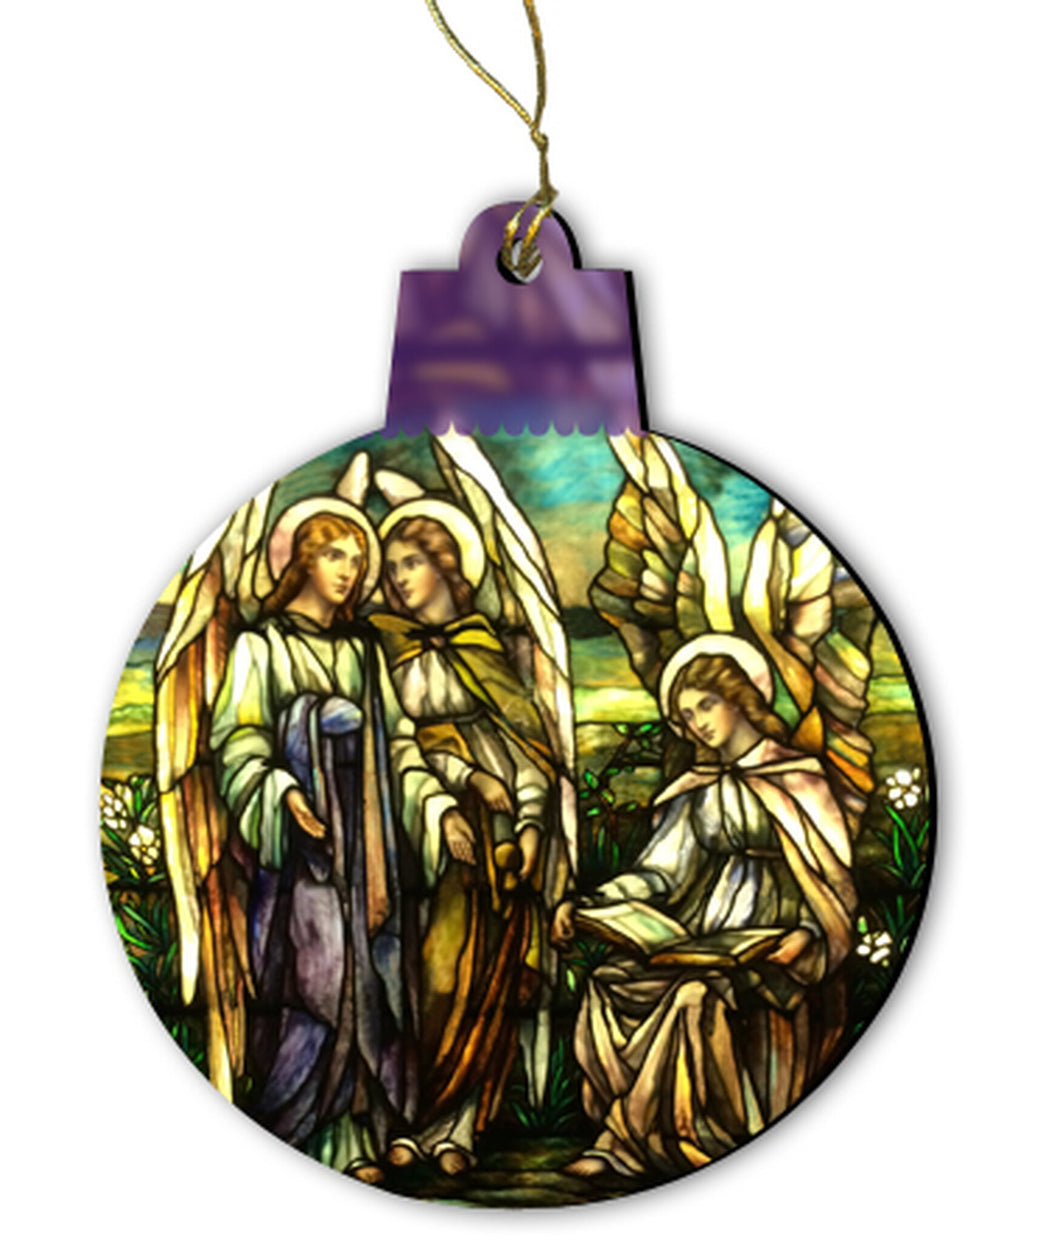 Tiffany Angels Stained Glass Ornament